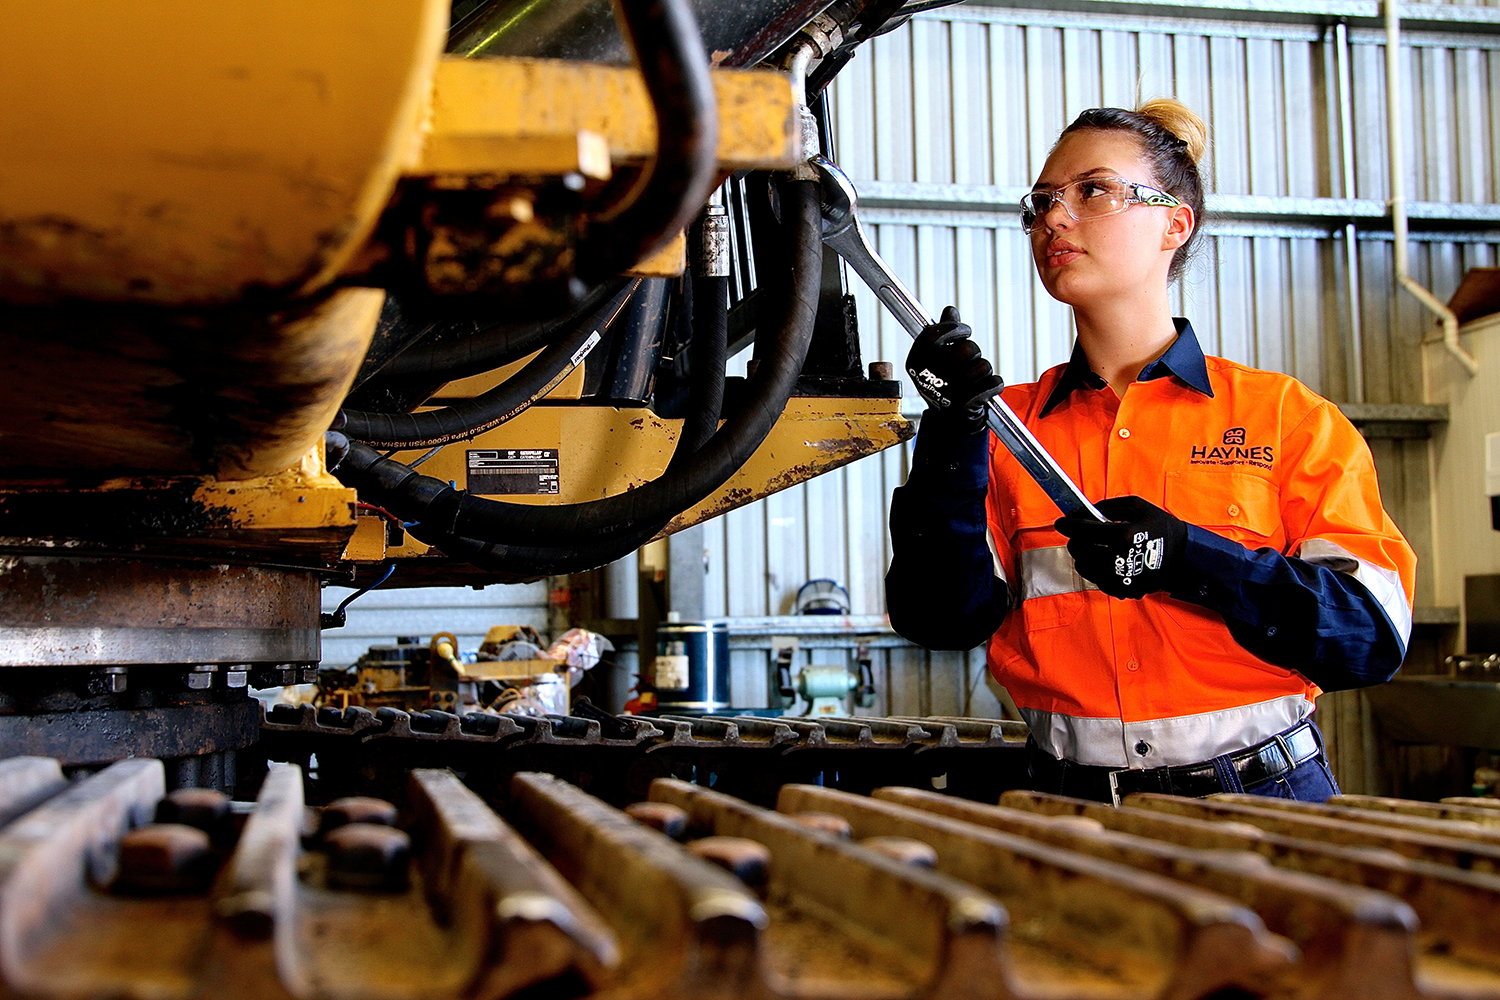 Trade Qualified Diesel Fitter Mining Maintenance Mackay QLD